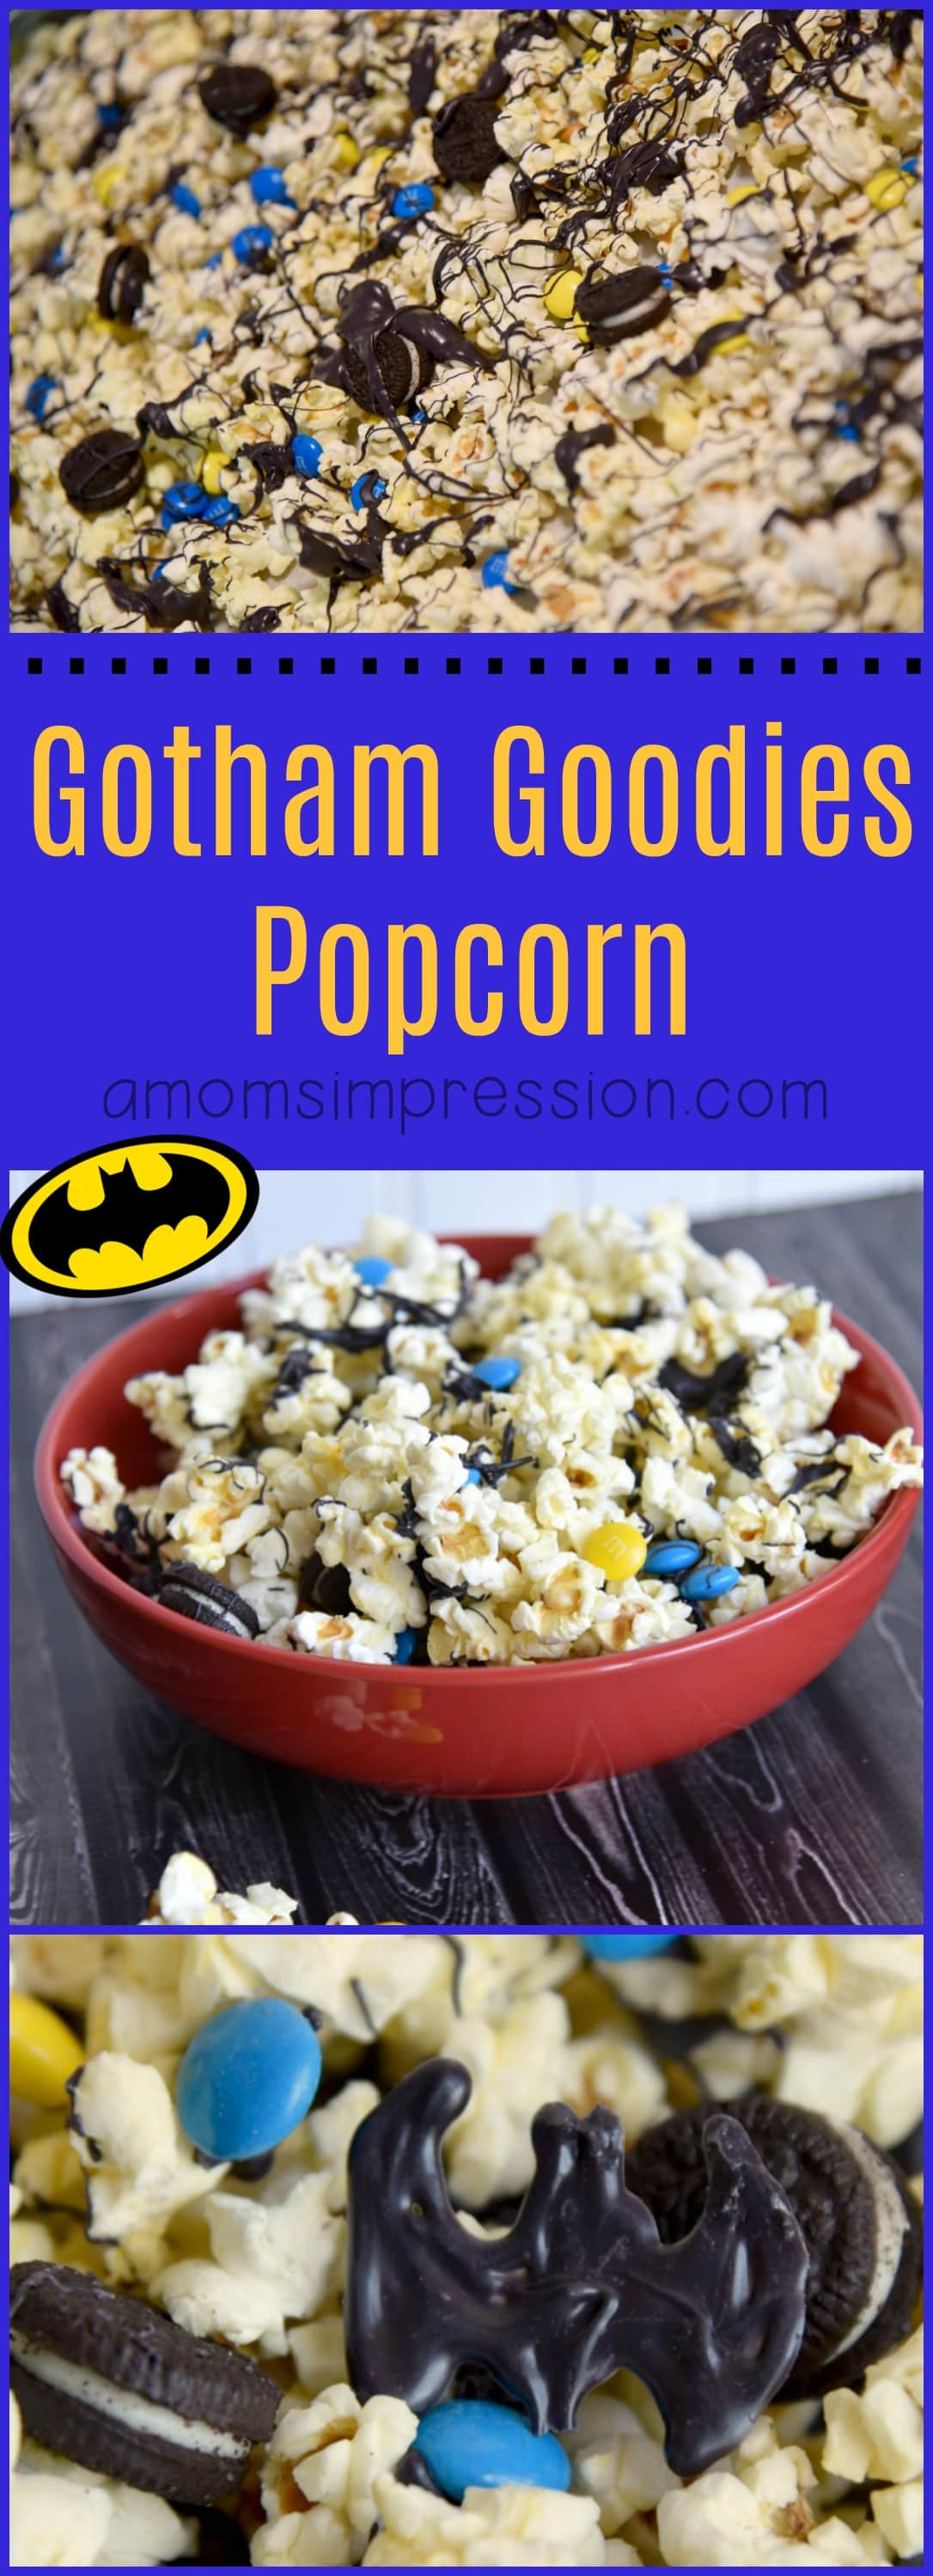 Can't get enough of Justice League? Try this caped crusader popcorn recipe for a tasty party snack or movie night treat! #ad #JusticeLeague #Batman